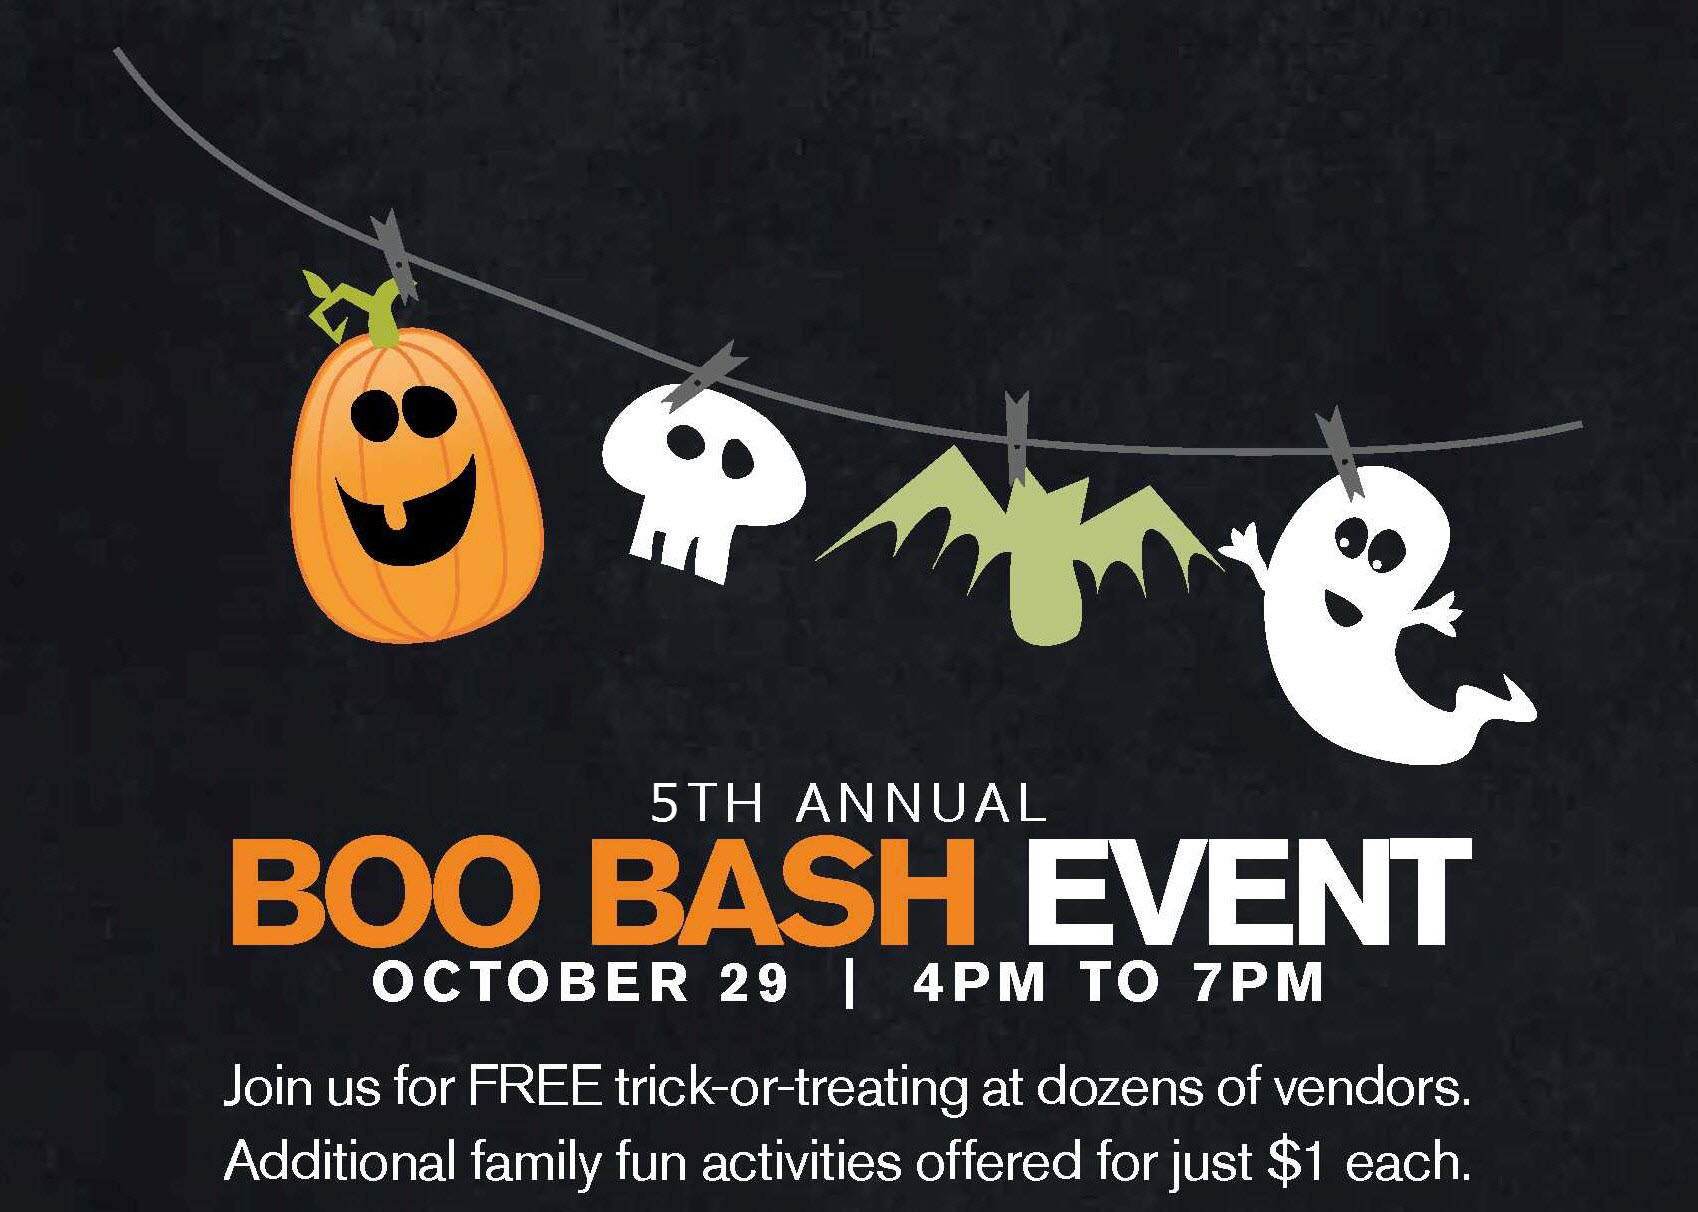 5th Annual Boo Bash Event | October 29 4PM to 7PM, Join us for free trick-or-treating at dozens of vendors. Additional family fun activities offered for just $1 each.